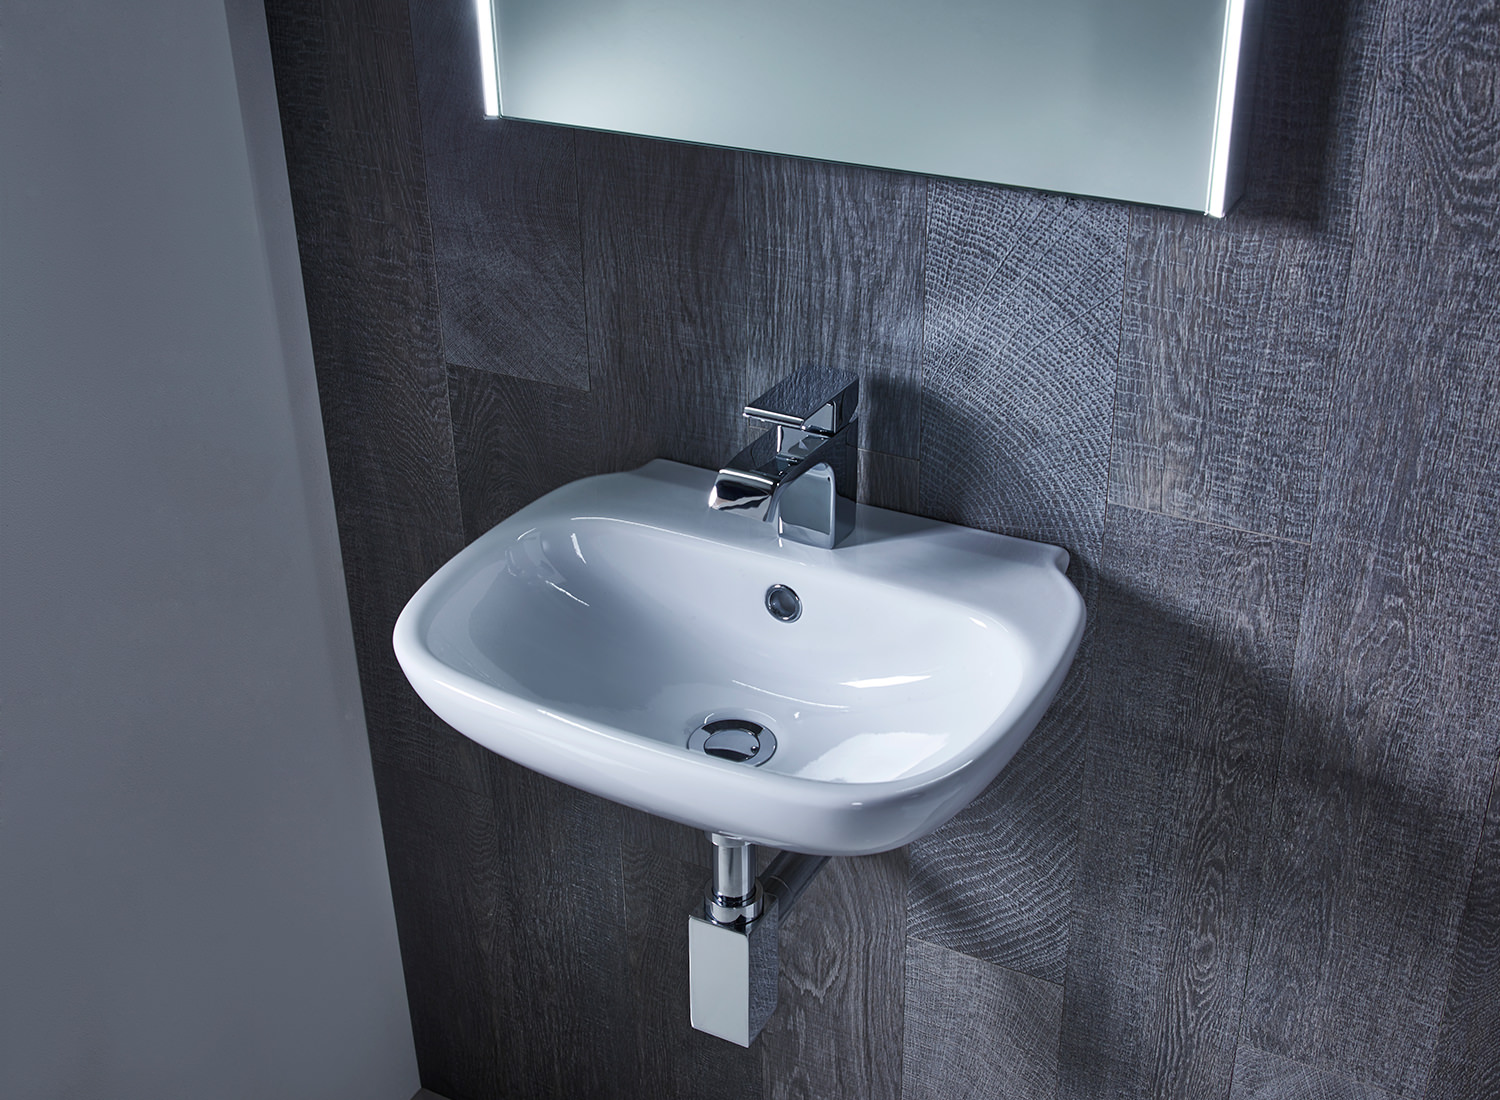 Roper rhodes note 450mm wall mounted or countertop basin for Wall mounted bathroom countertop